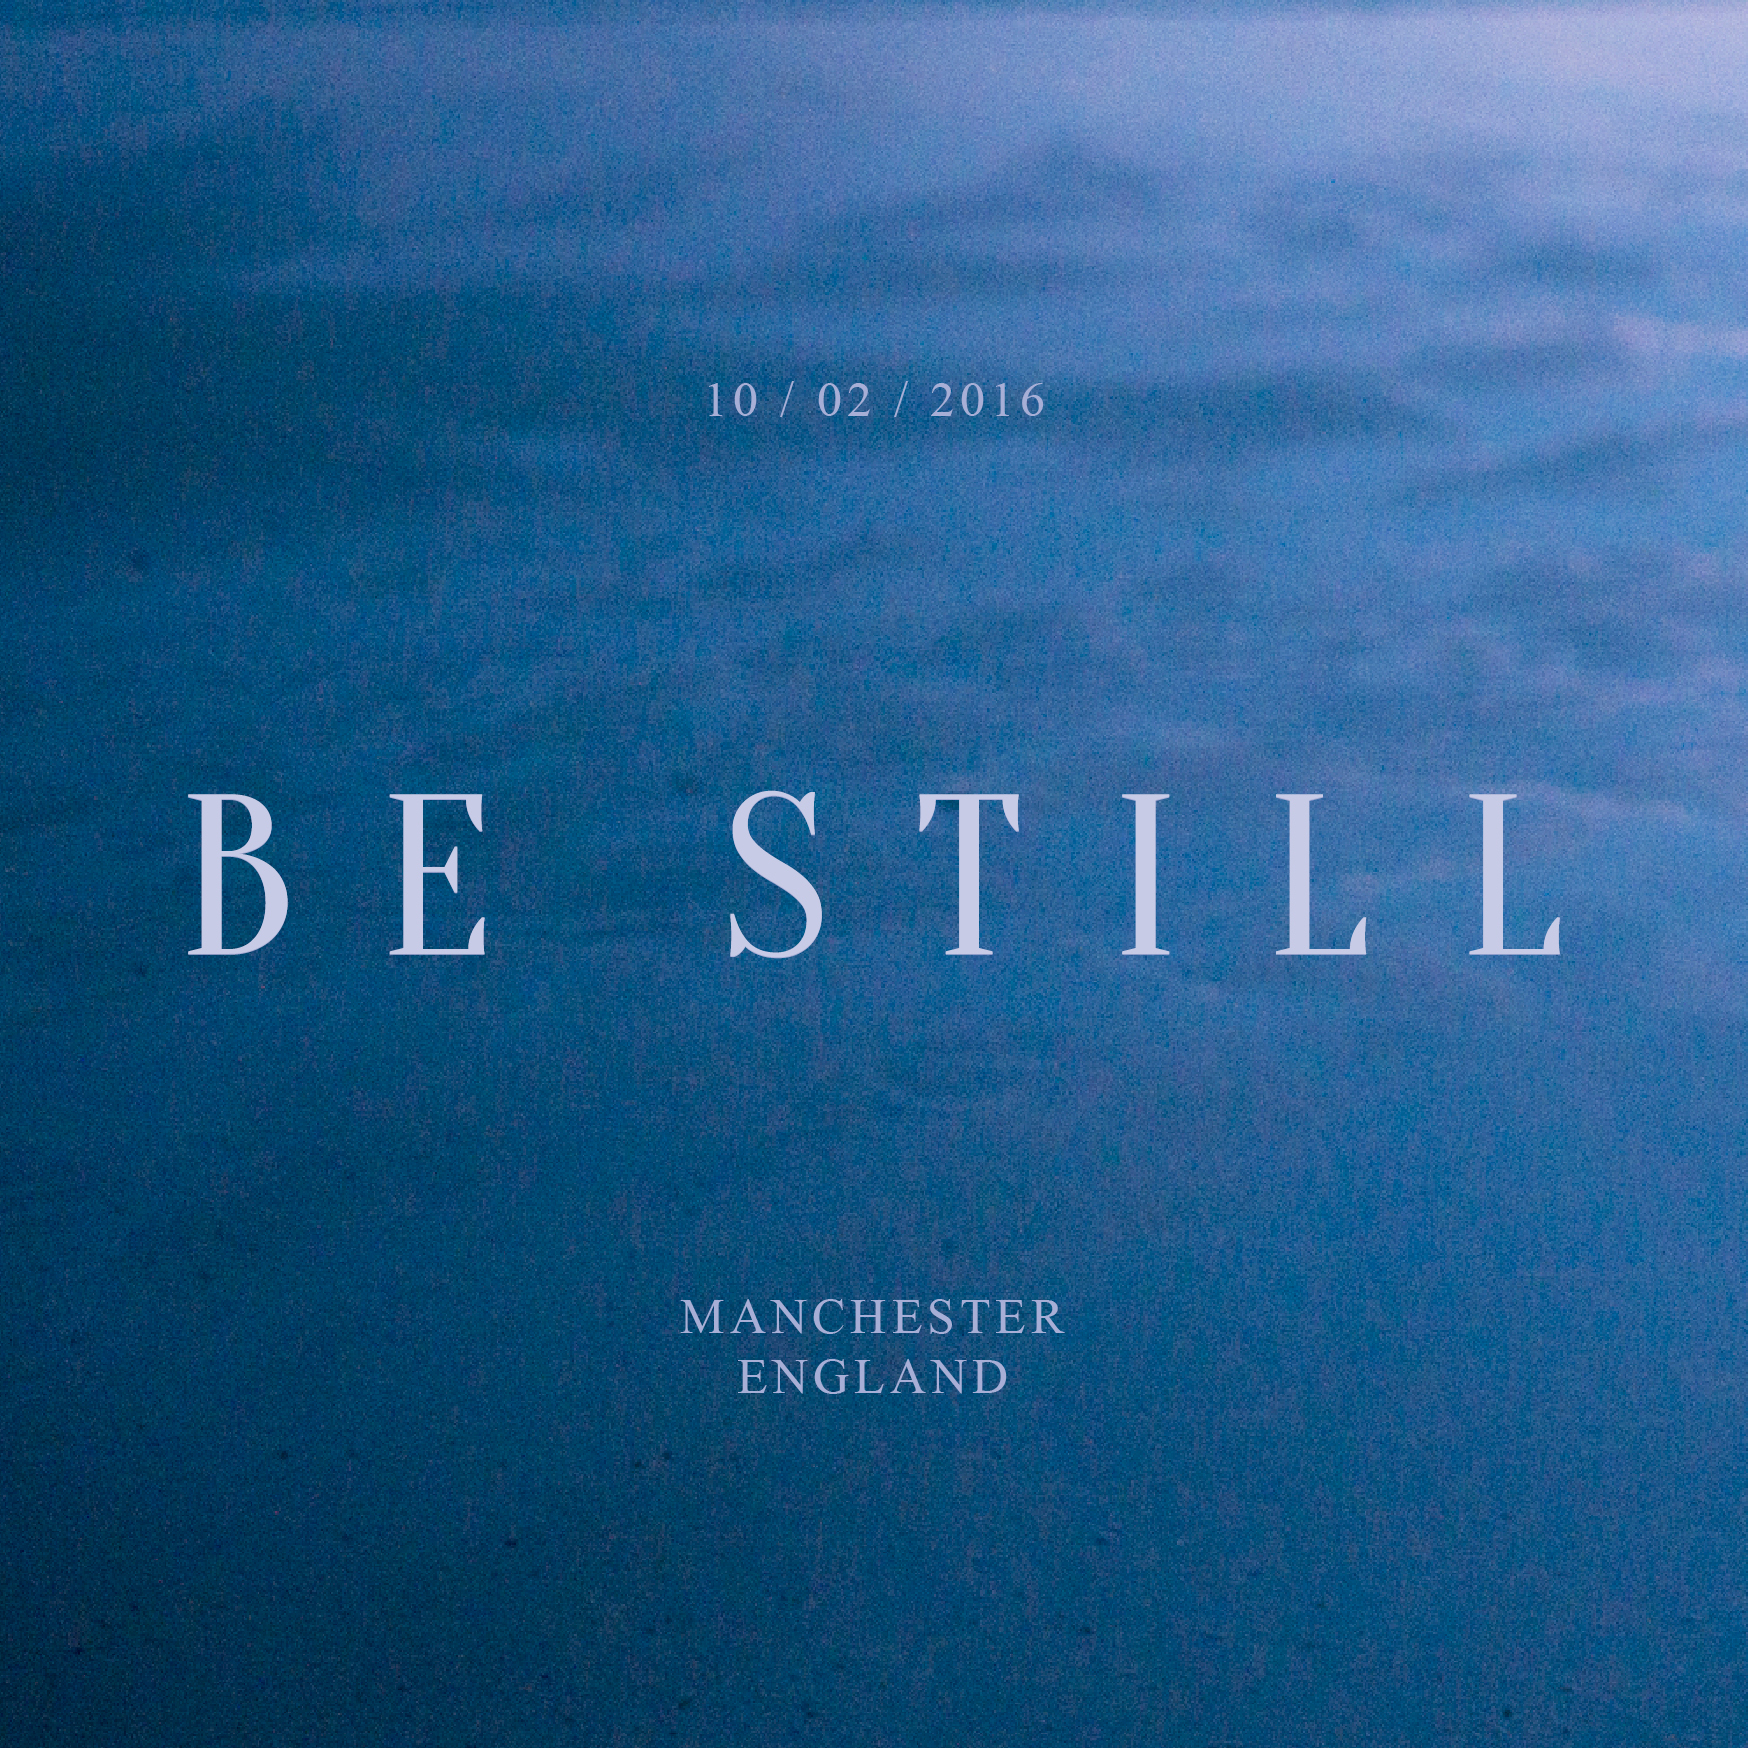 Stillness of water #BeStillMcr